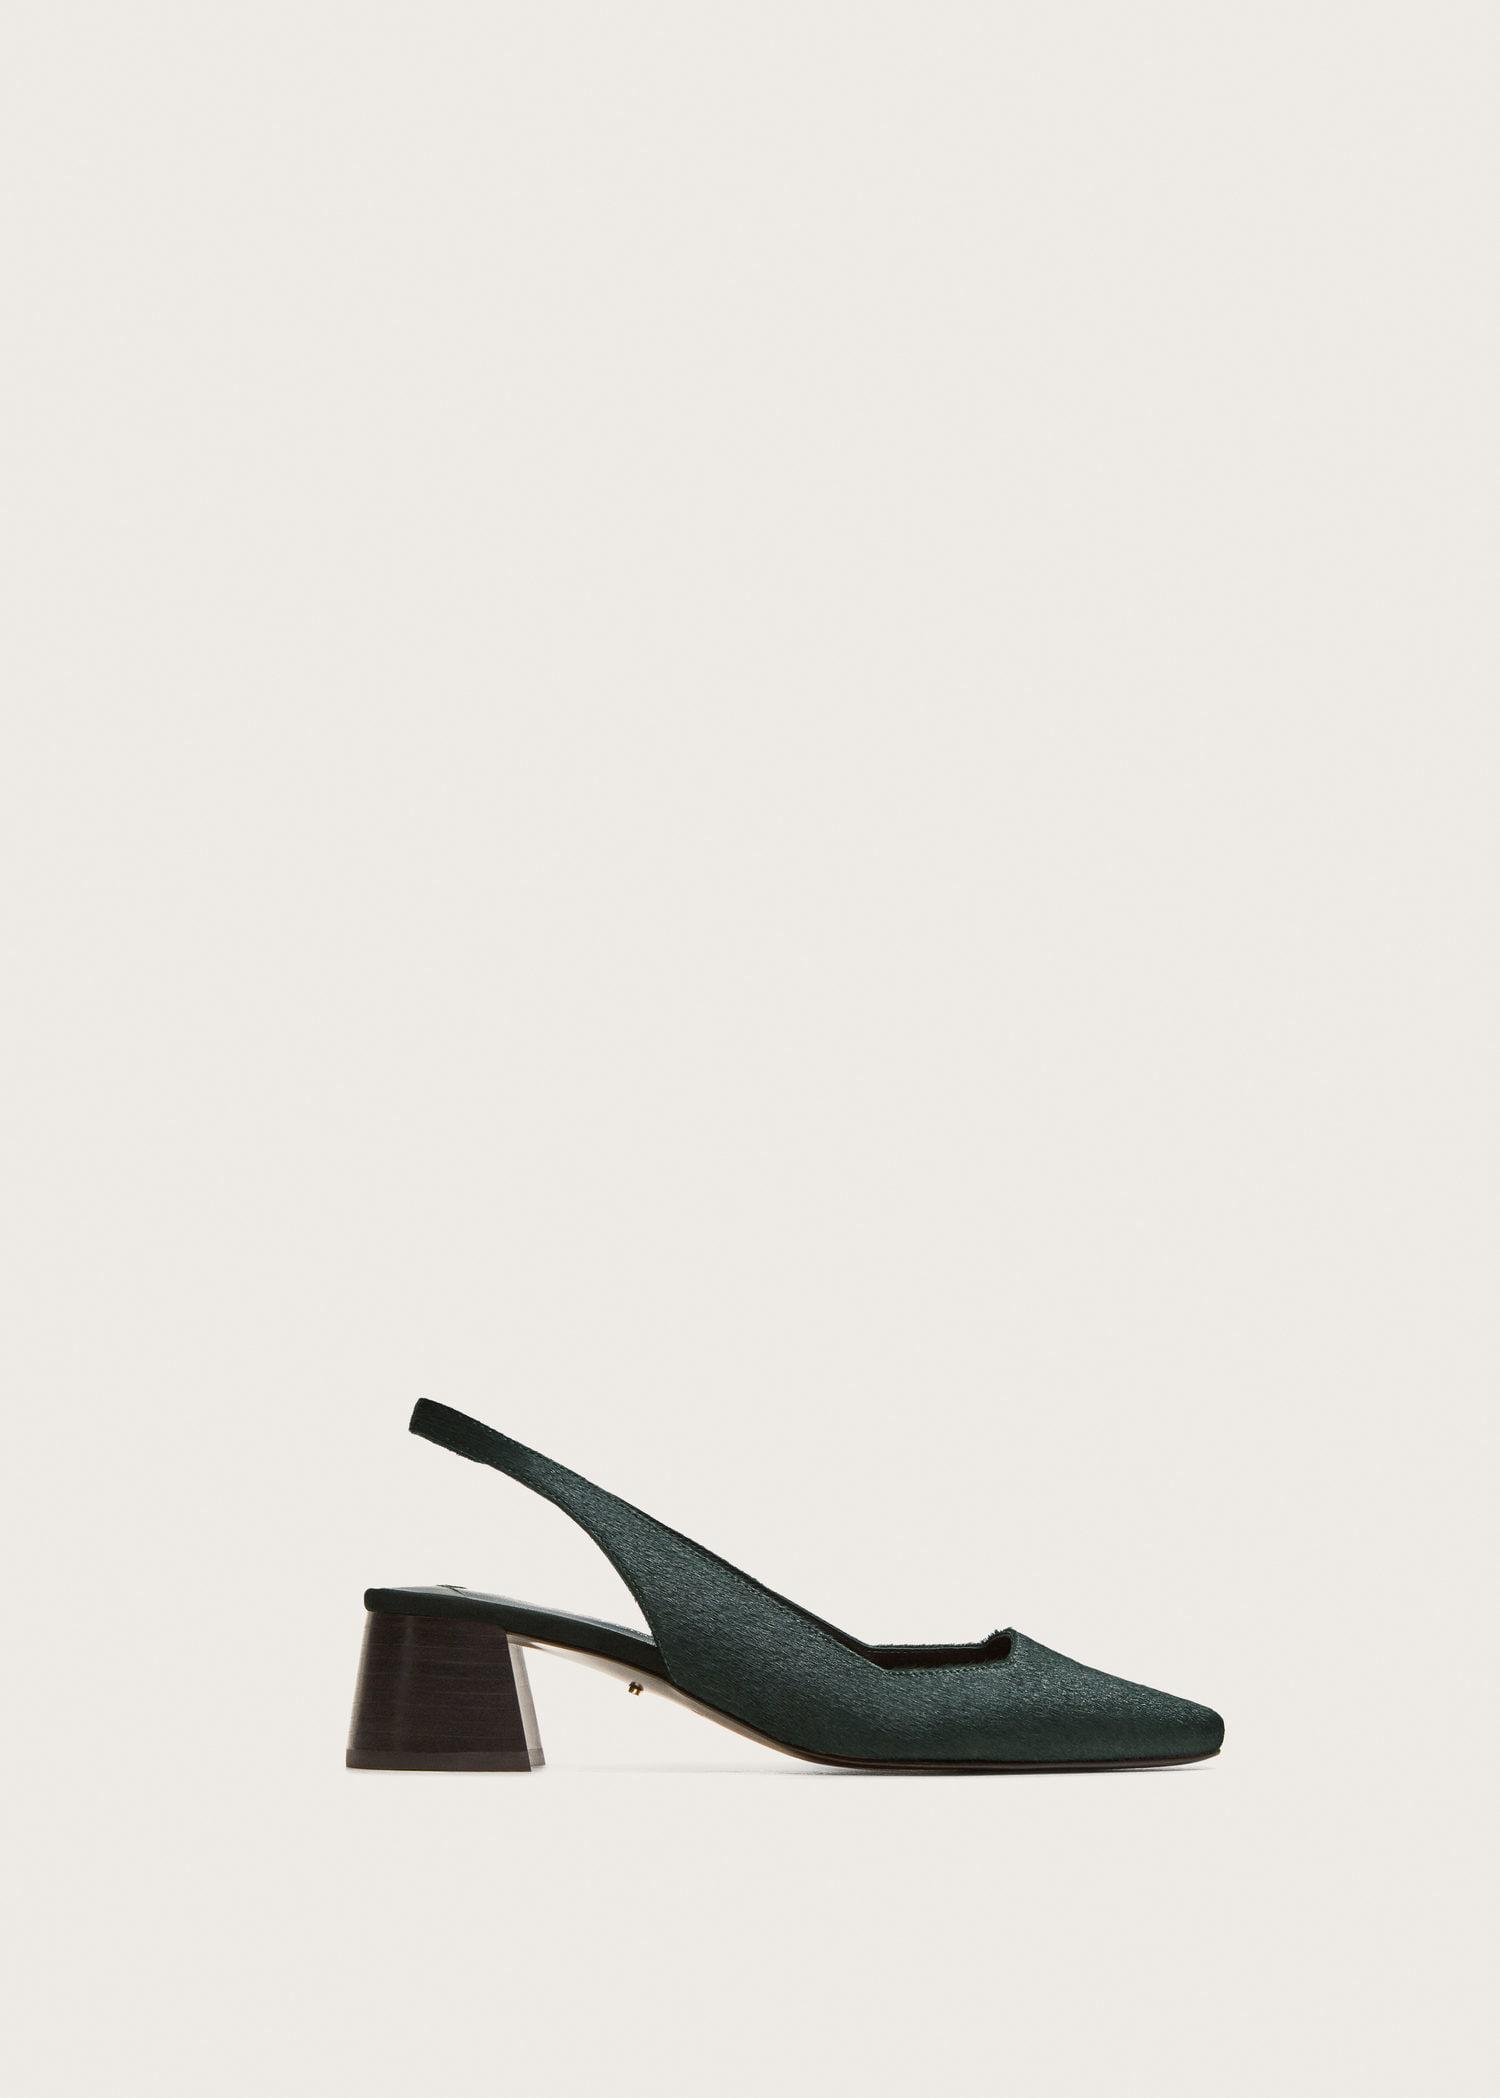 1a743d15088 Lyst - Violeta by Mango Slingback Leather Shoes in Green